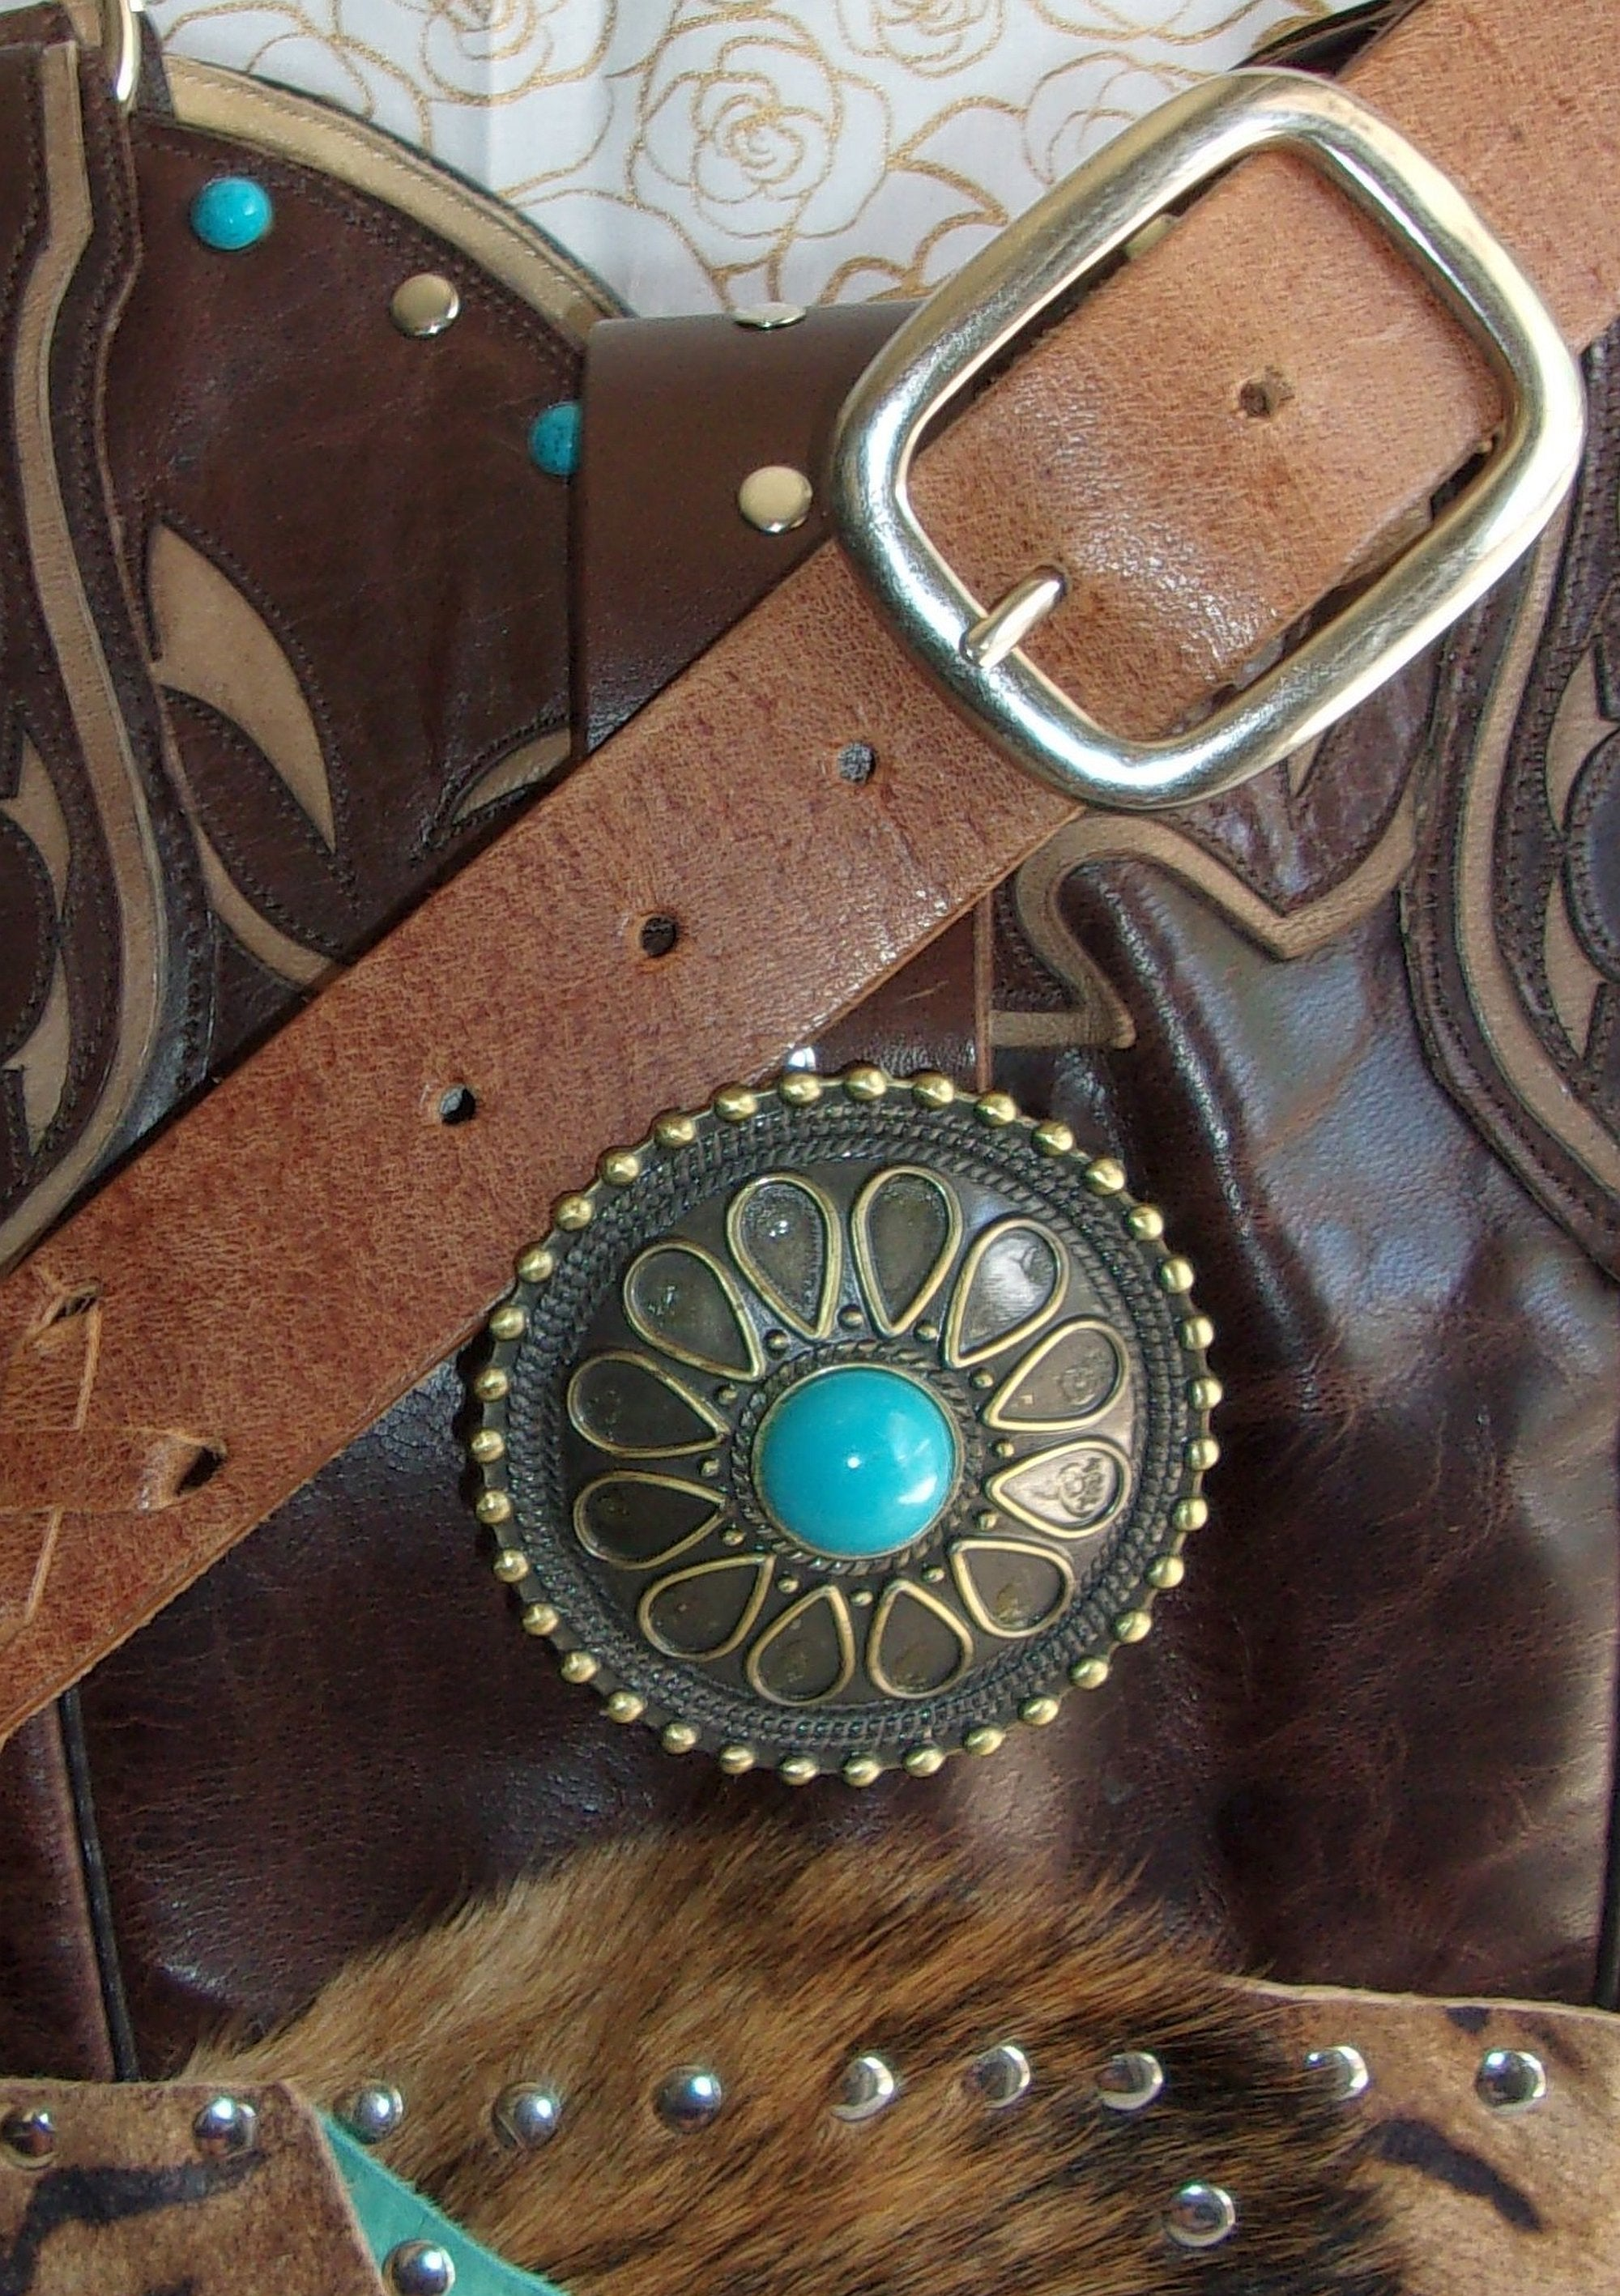 close up ts279 turquoise zebra western unique leather hair on hide purse handcrafted from recycled reclaimed cowboy boots